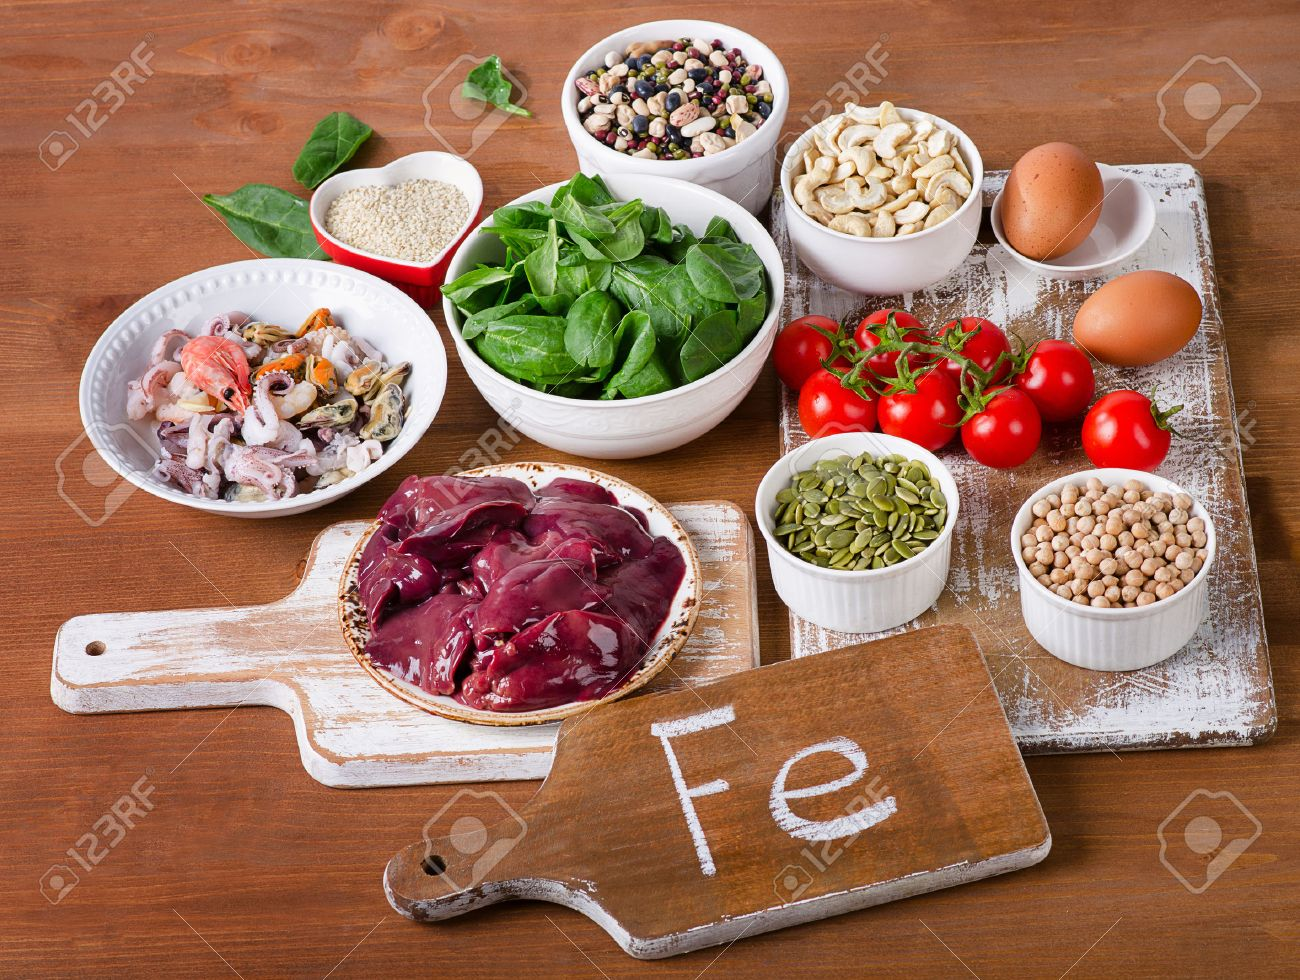 Foods high in Iron, including eggs, nuts, spinach, beans, seafood, liver, chickpeas. - 55559990